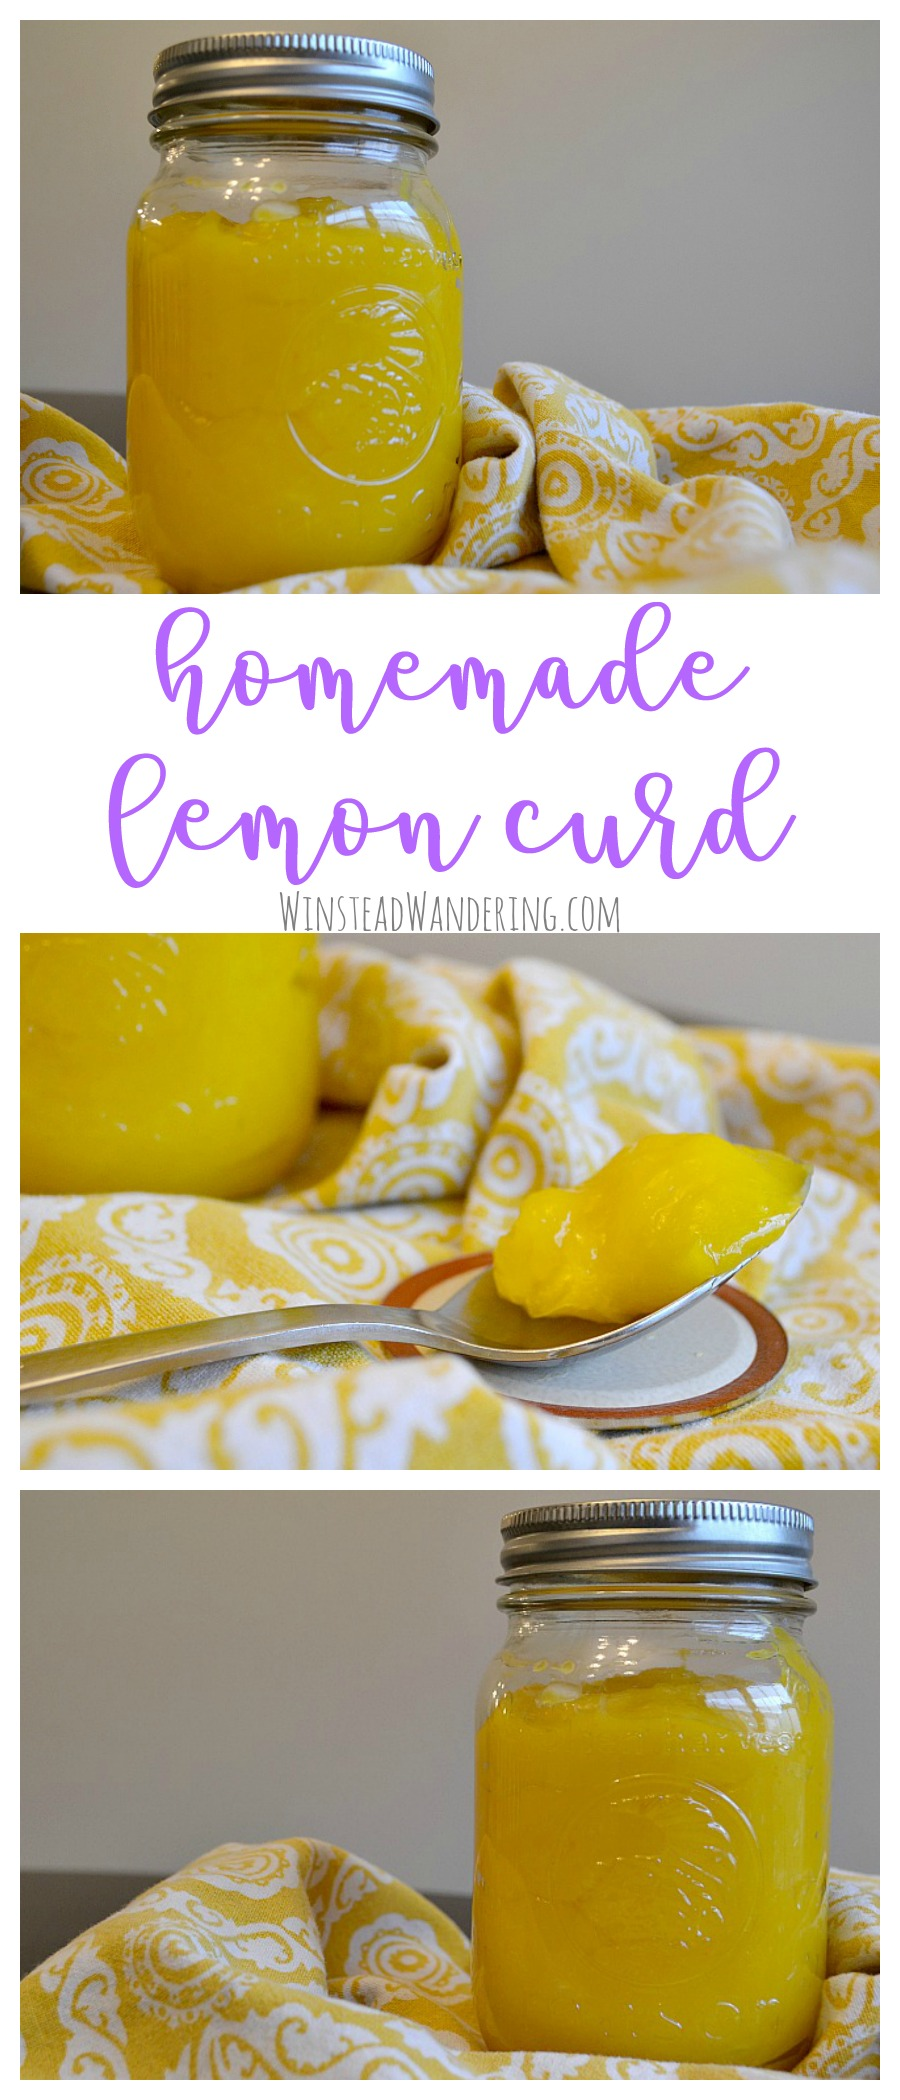 The recipe possibilities are endless and the flavor is unbelievable. You won't regret taking a little extra time to make your own Homemade Lemon Curd.